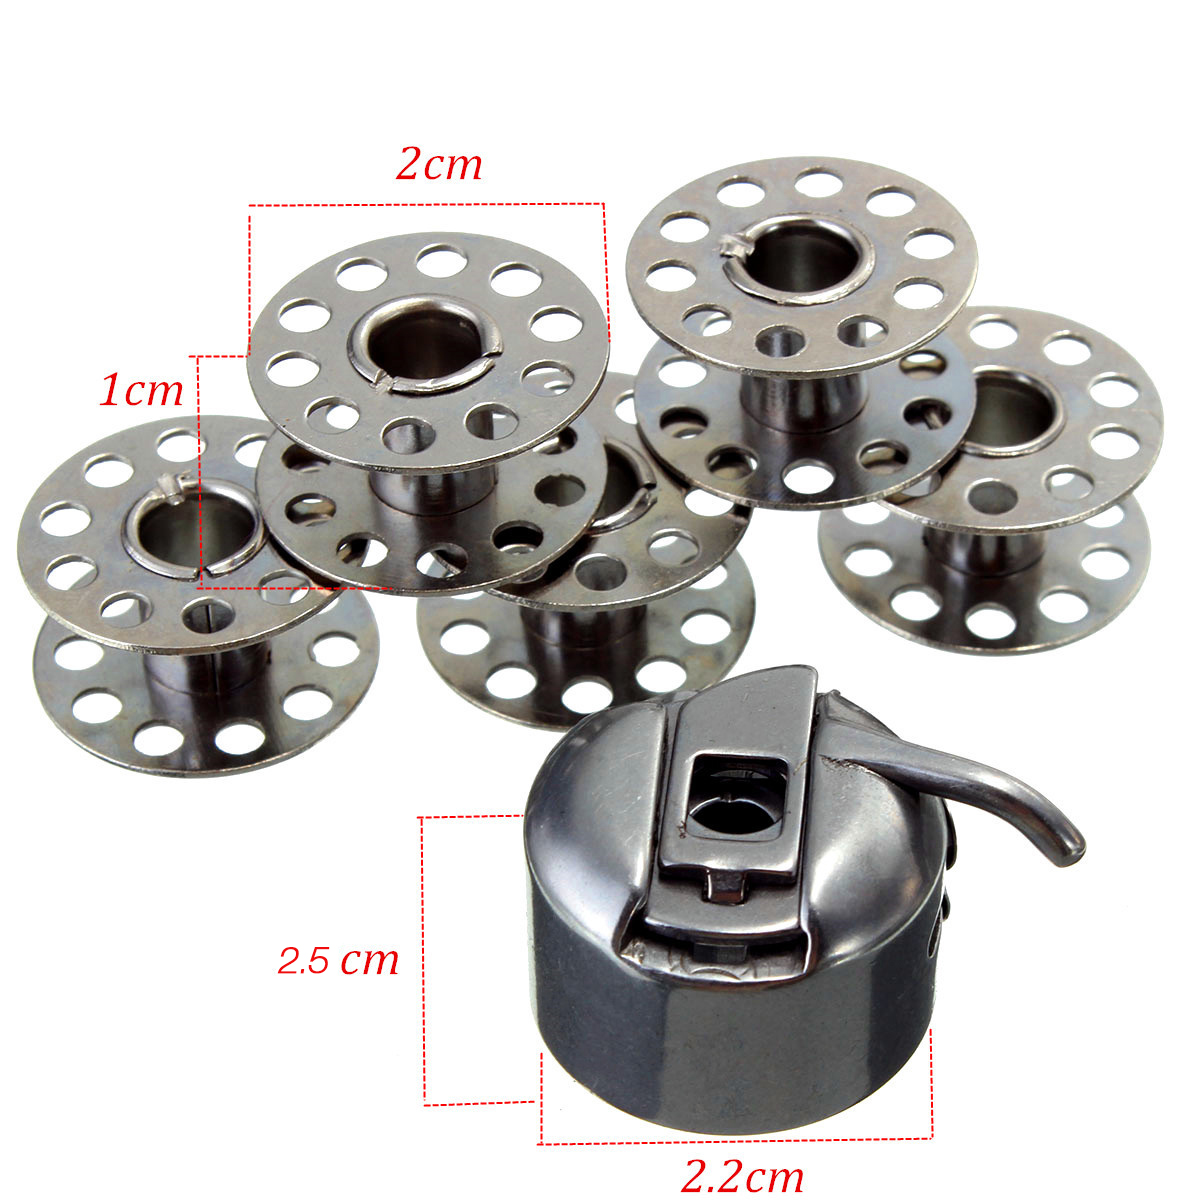 Stainless Steel Sewing Machine Accessories 5 Bobbins 1 Bobbin Case For Brother Toyata Singer